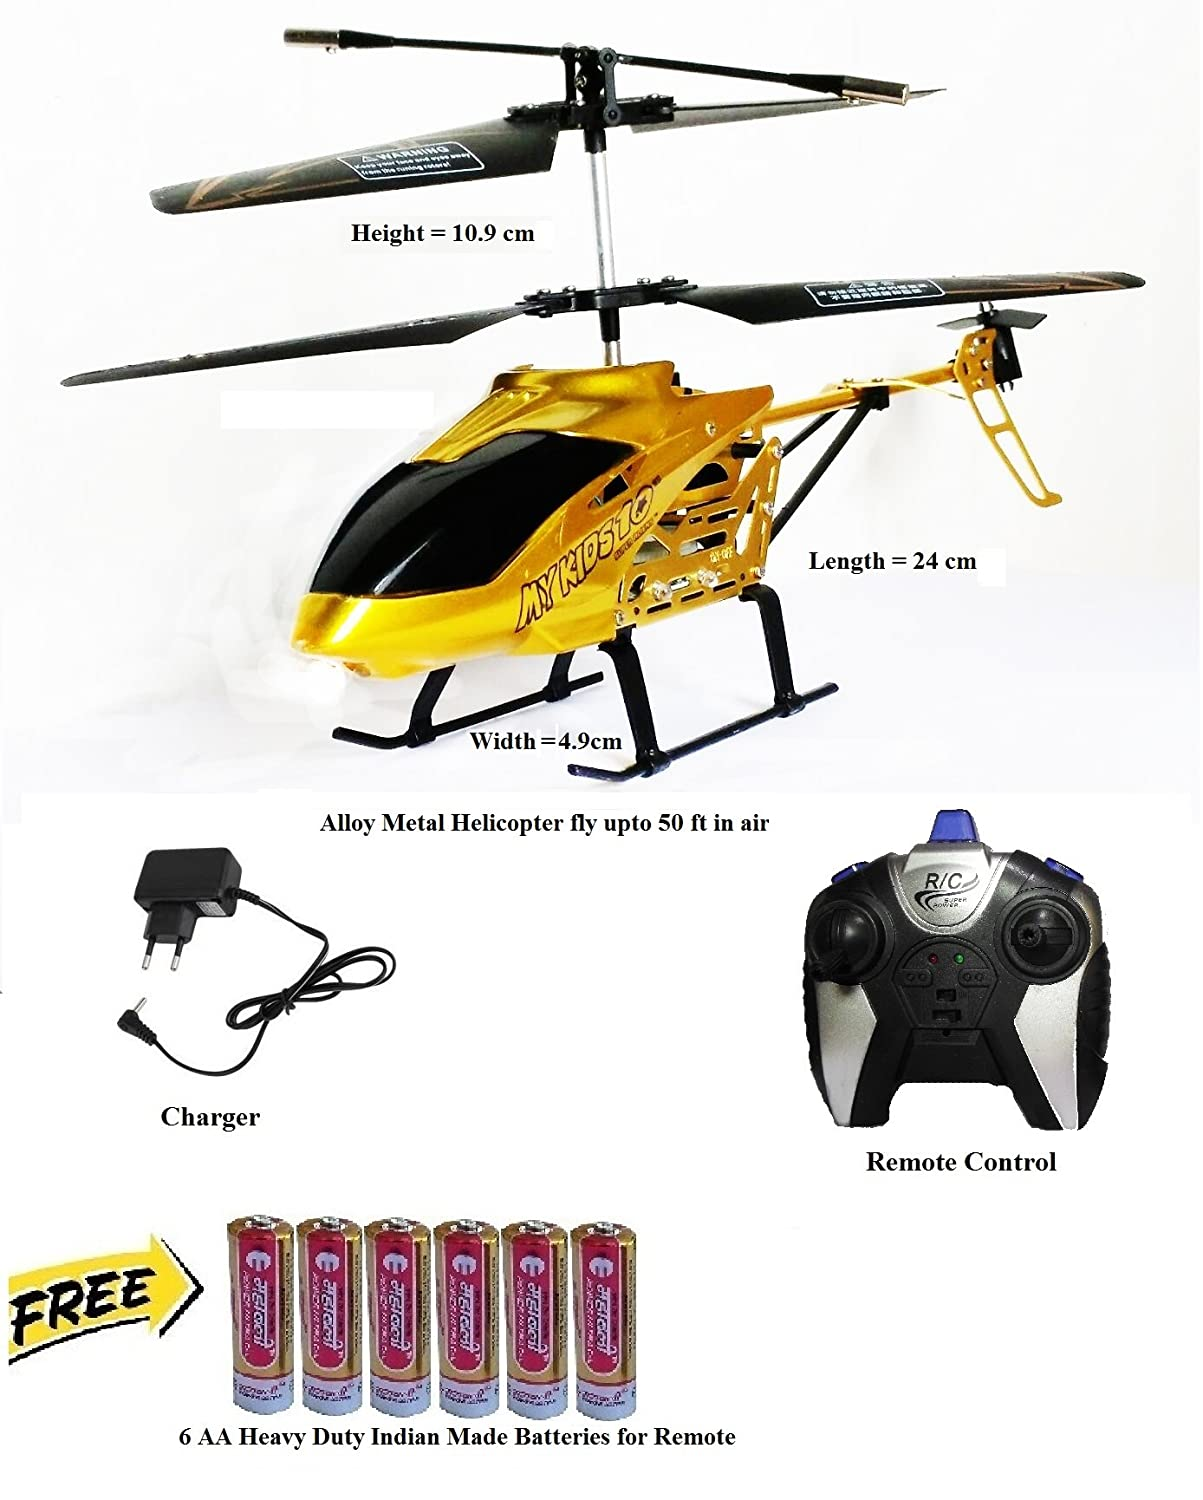 buy townhawk alloy metal remote control 3 channel kids helicopter